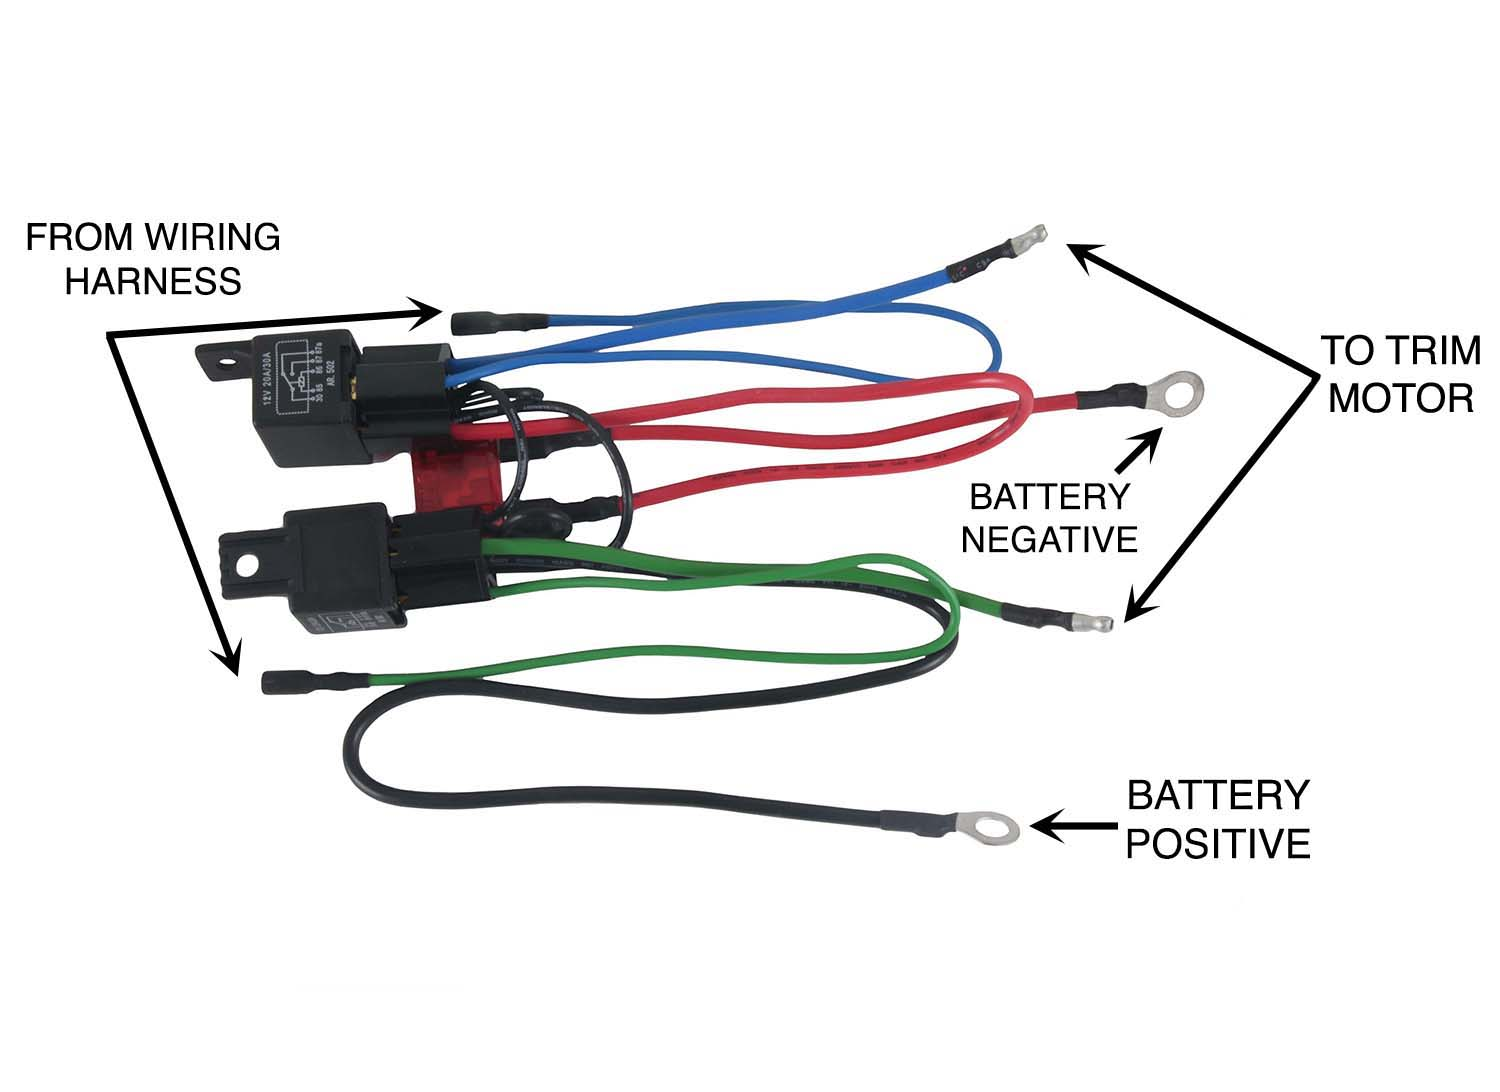 new wiring harness convert 3 wire tilt trim motor to 2 ... schematic wiring 3 wire cable